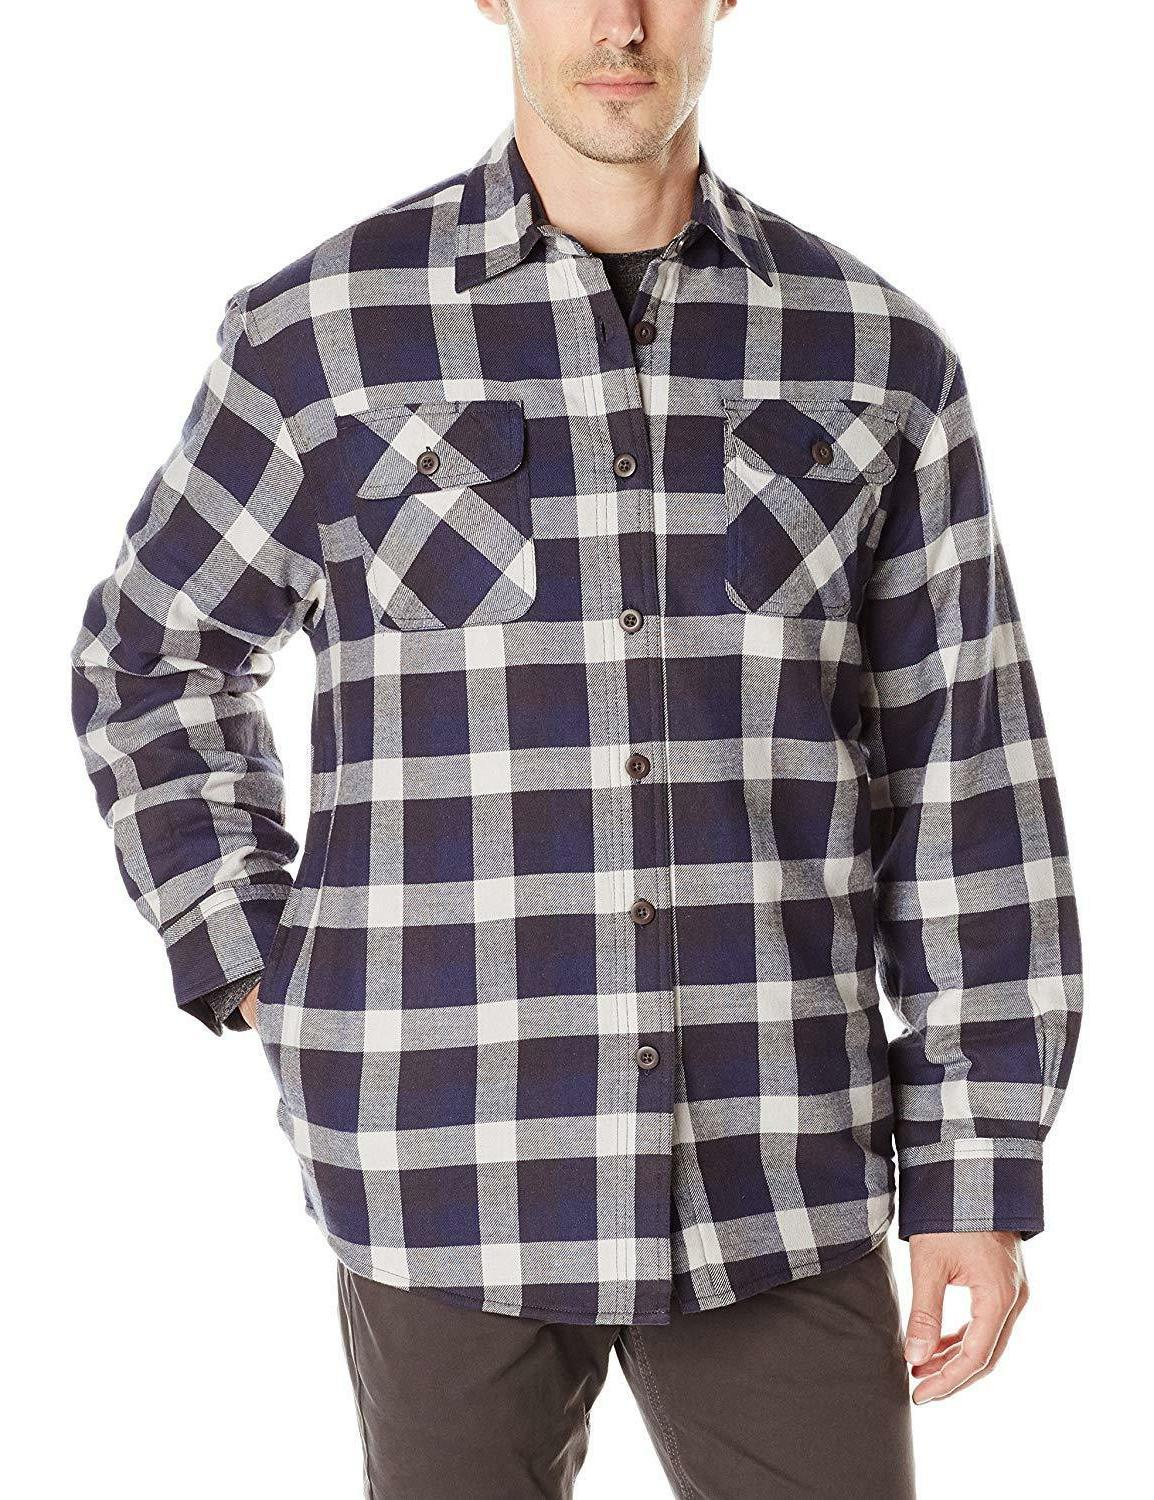 Wrangler Authentics Sleeve Lined Flannel Shirt